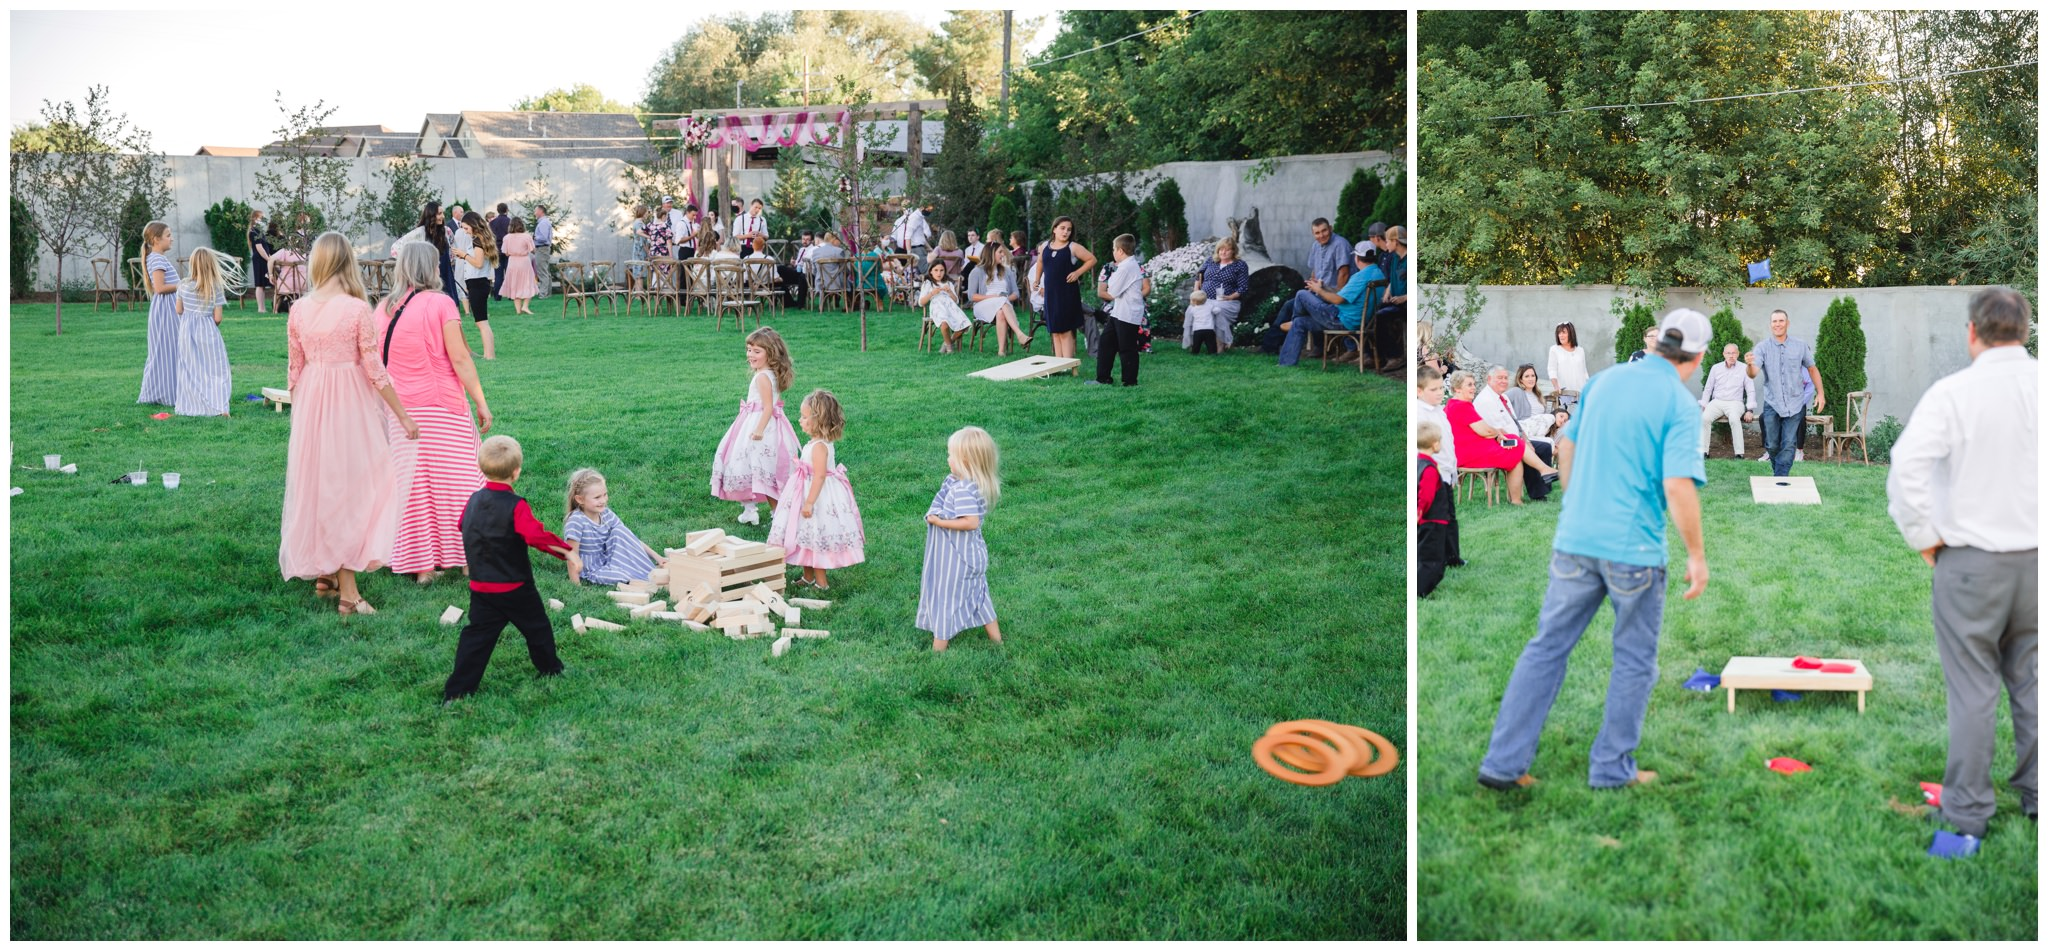 Outside yard games for Summer wedding activities for guests.